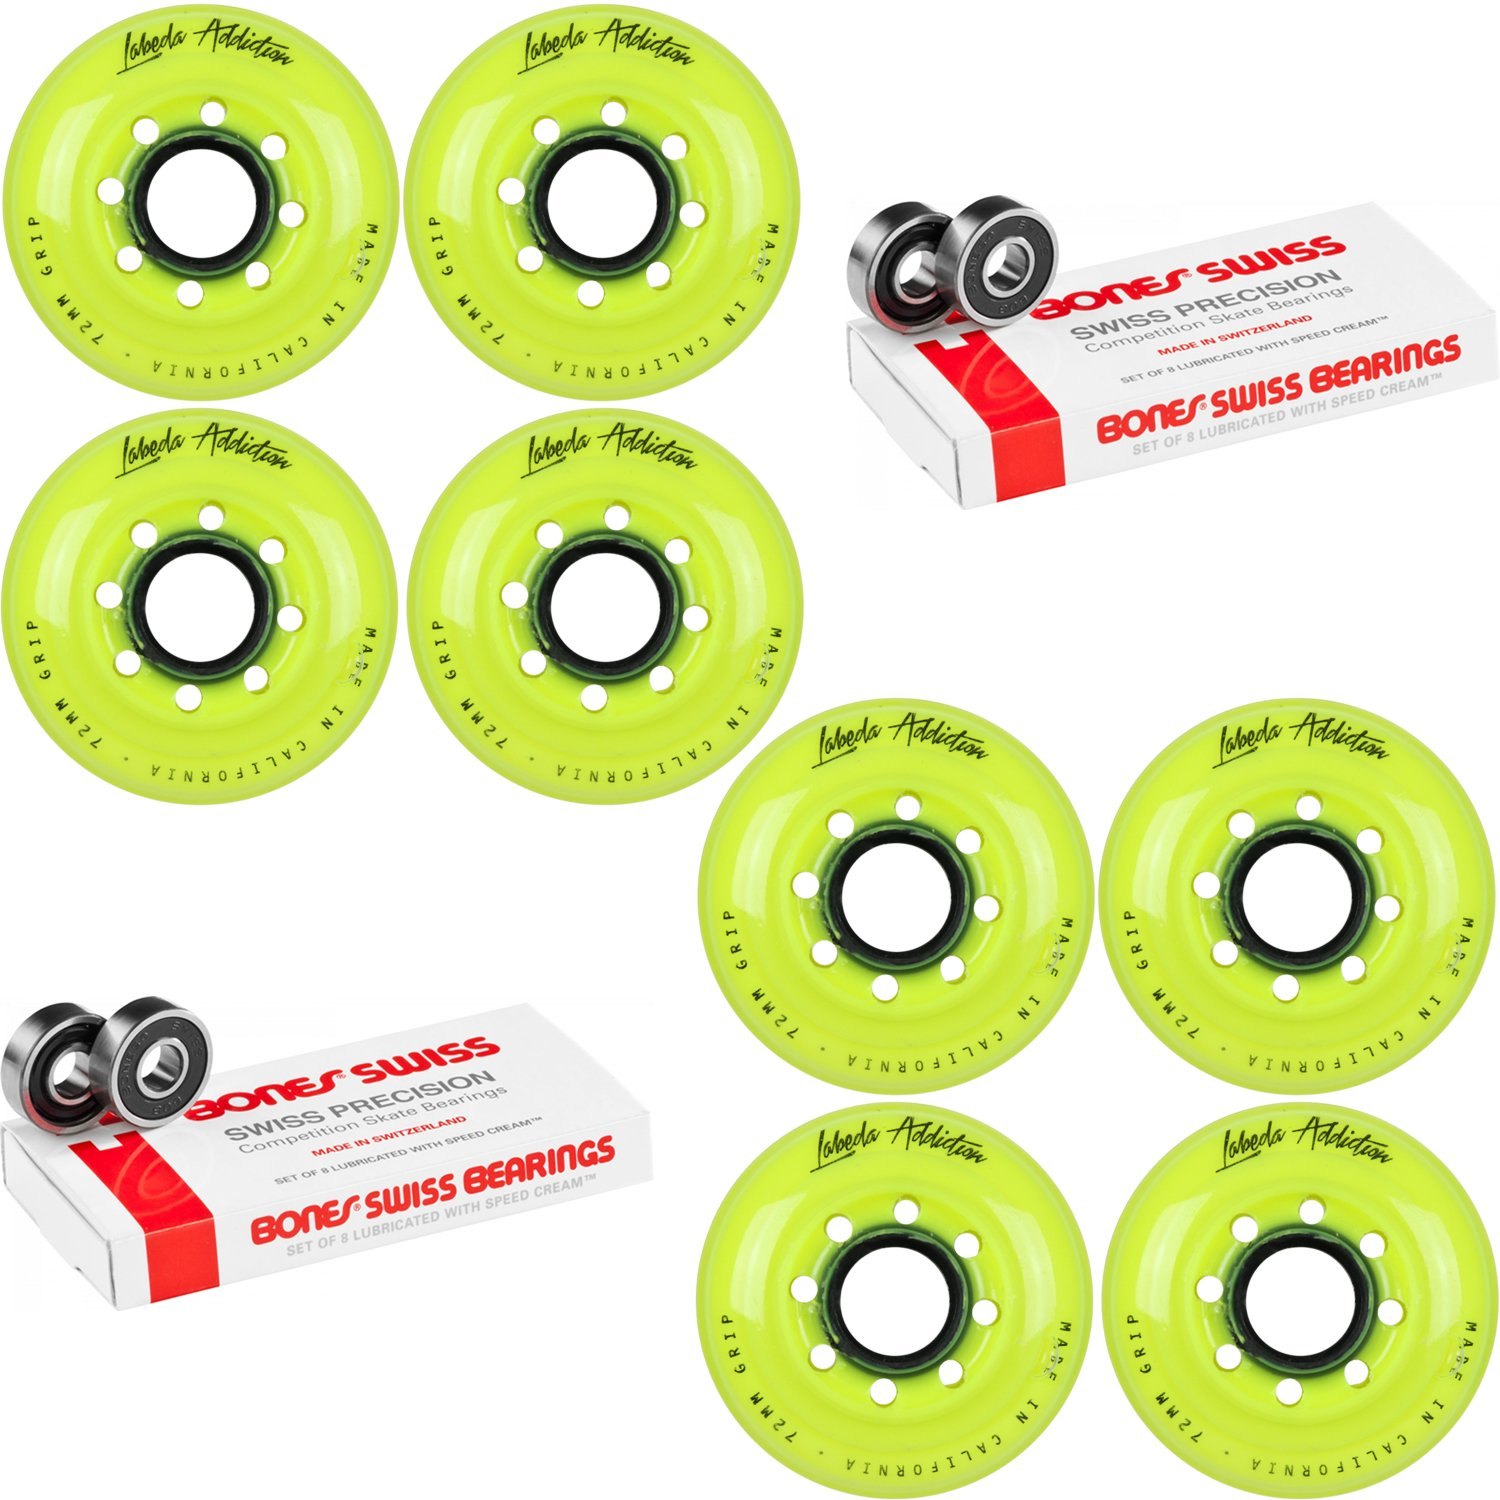 Labeda Inline Roller Hockey Skate Wheels Addiction Yellow 72mm 8 Set Bones Swiss by Labeda